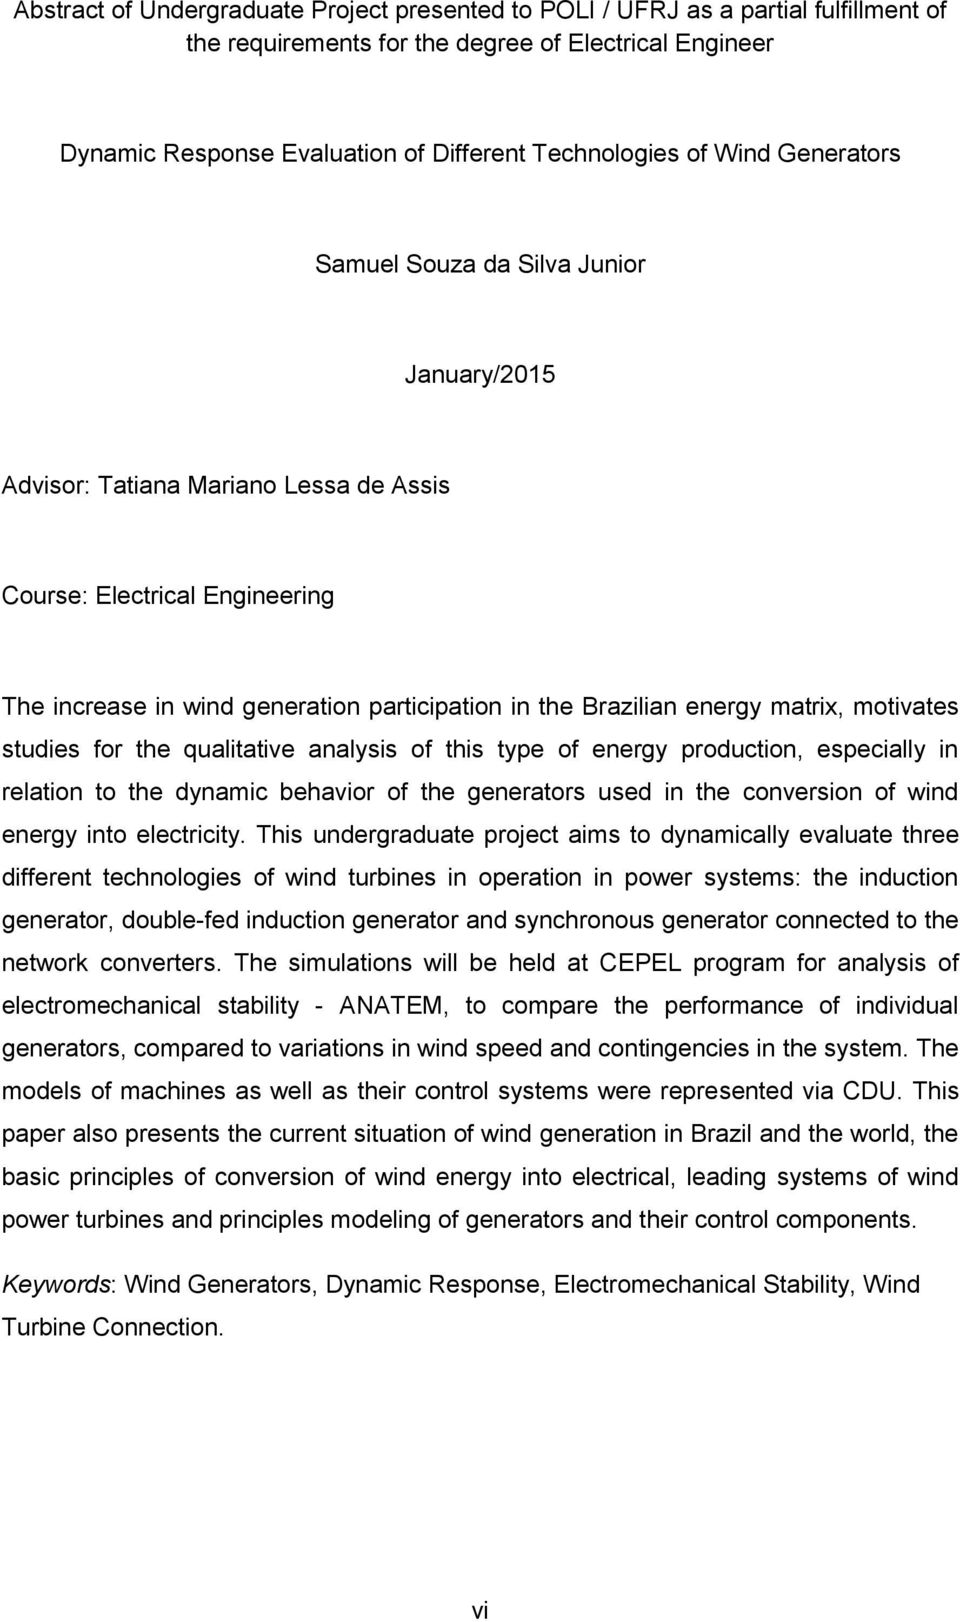 matrix, motivates studies for the qualitative analysis of this type of energy production, especially in relation to the dynamic behavior of the generators used in the conversion of wind energy into